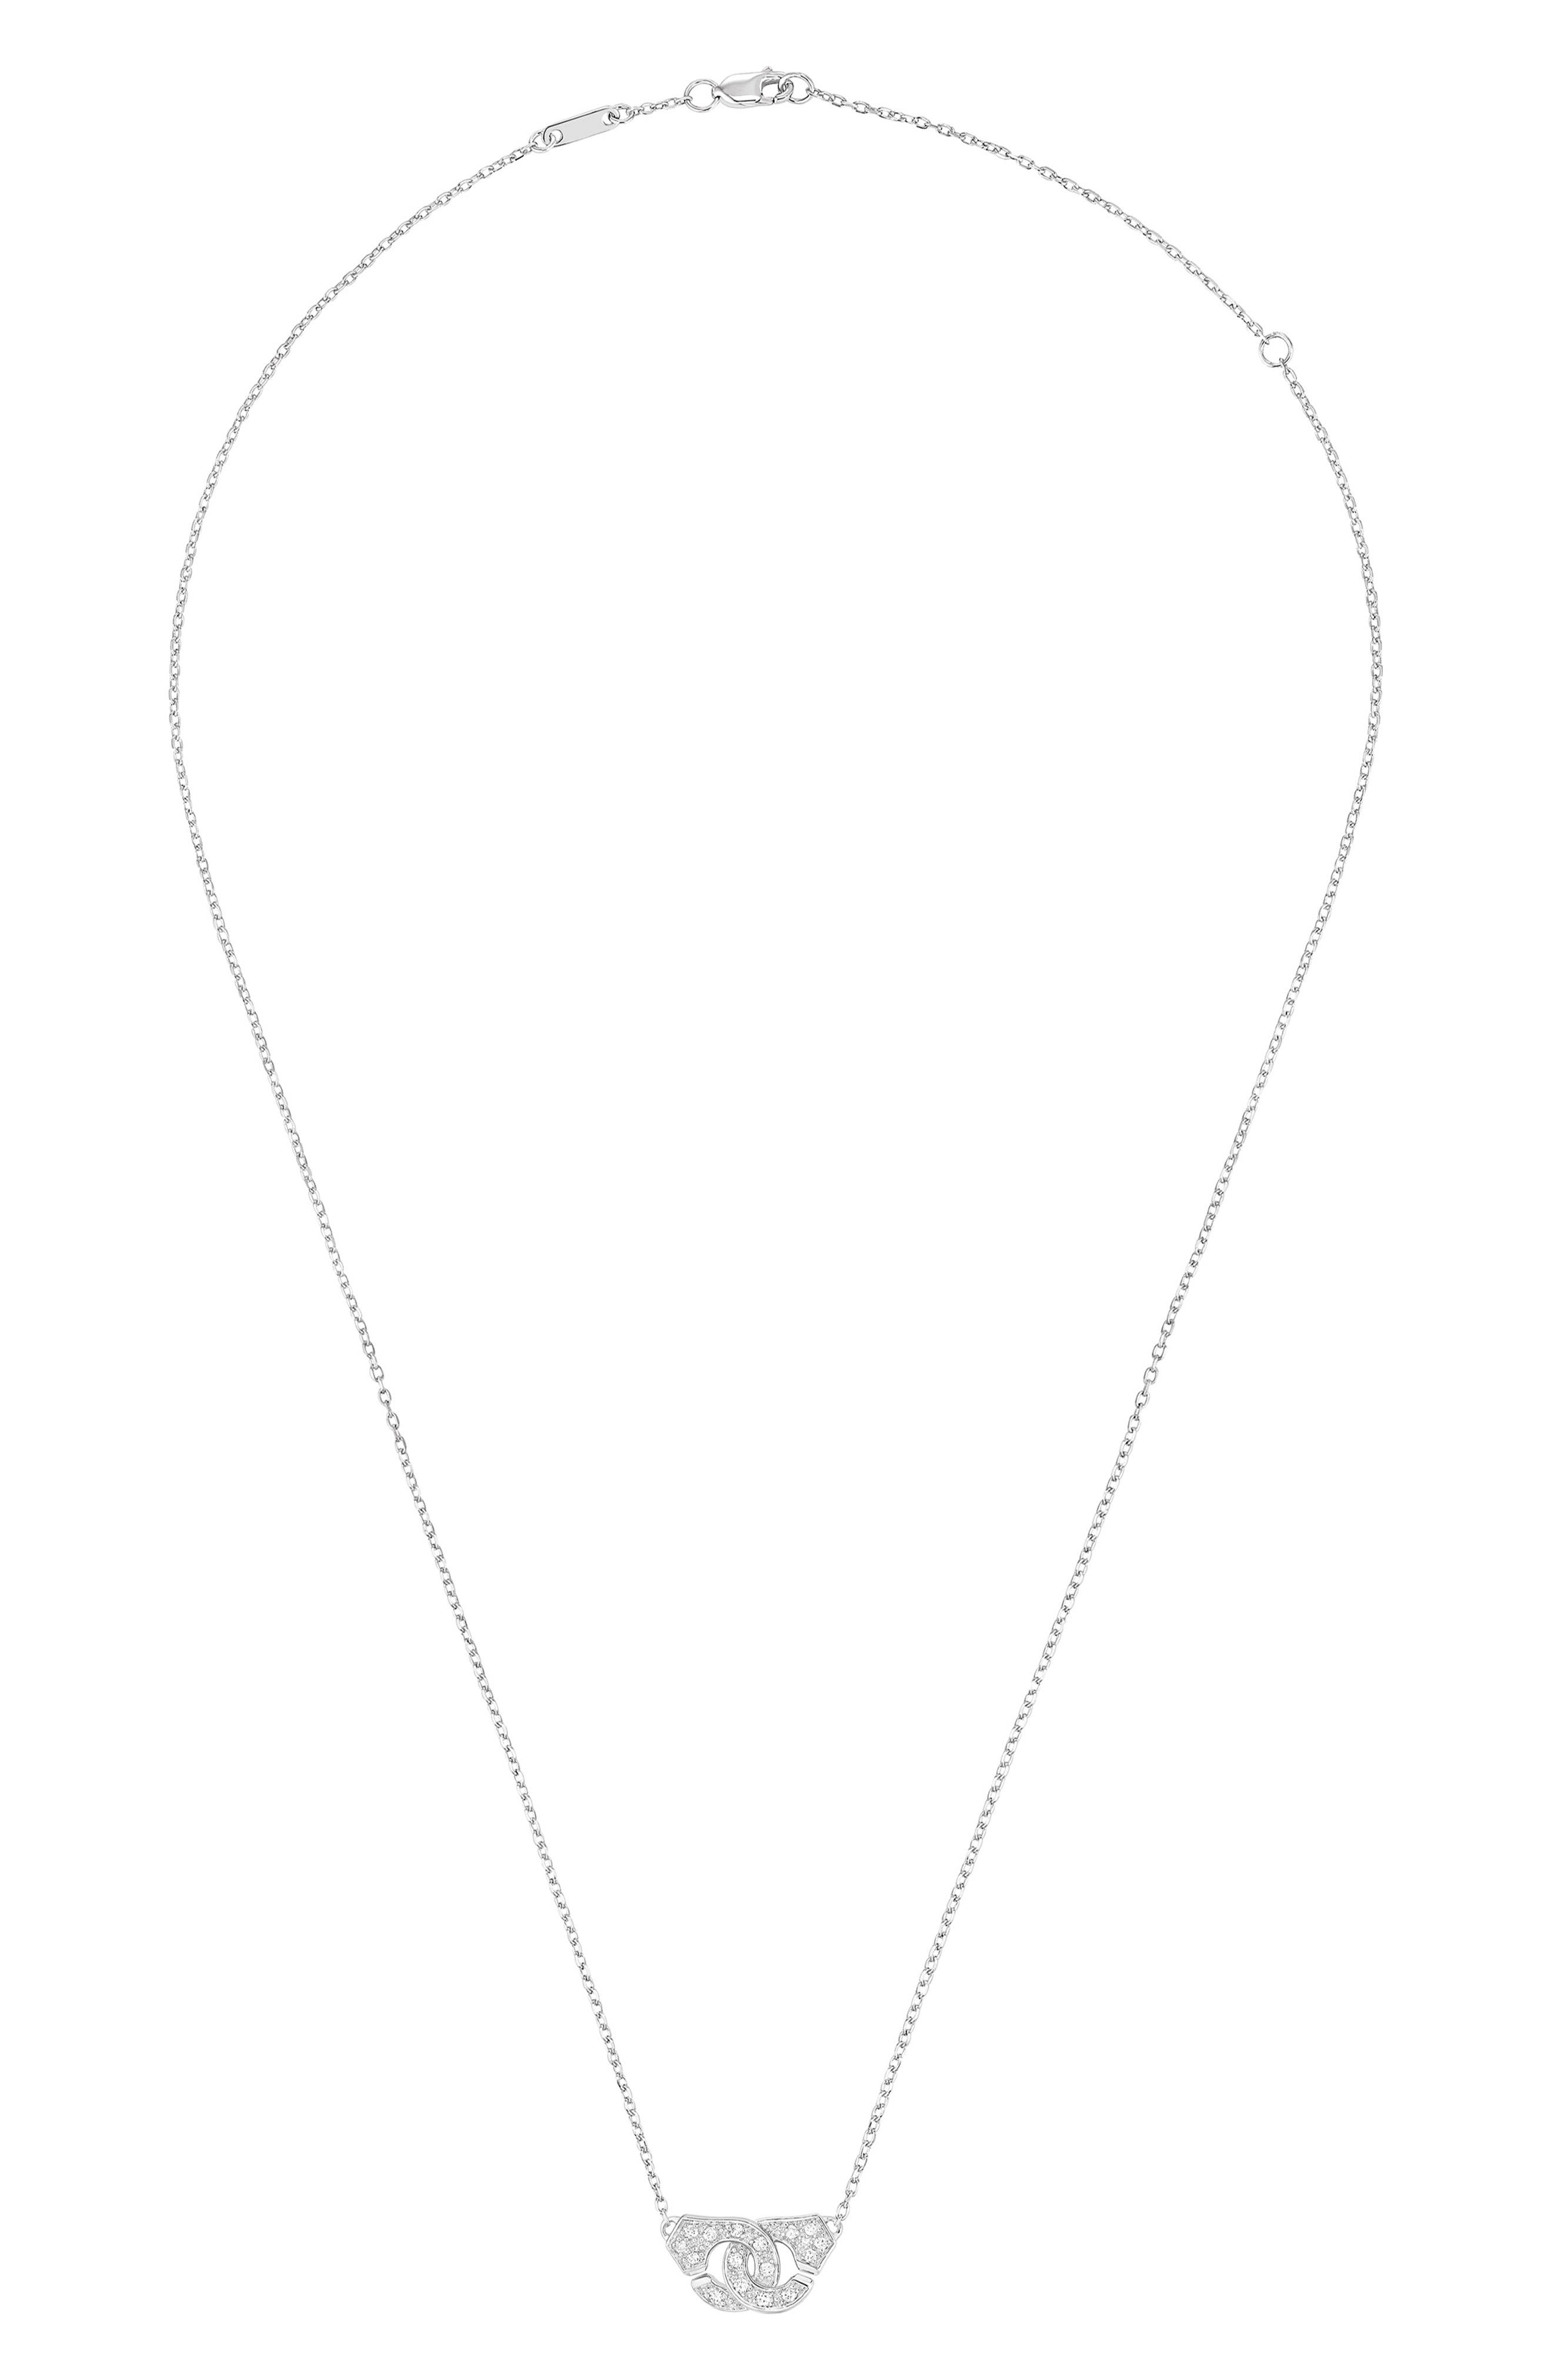 DINH VAN Menottes Trace Pave Diamond Necklace in White Gold